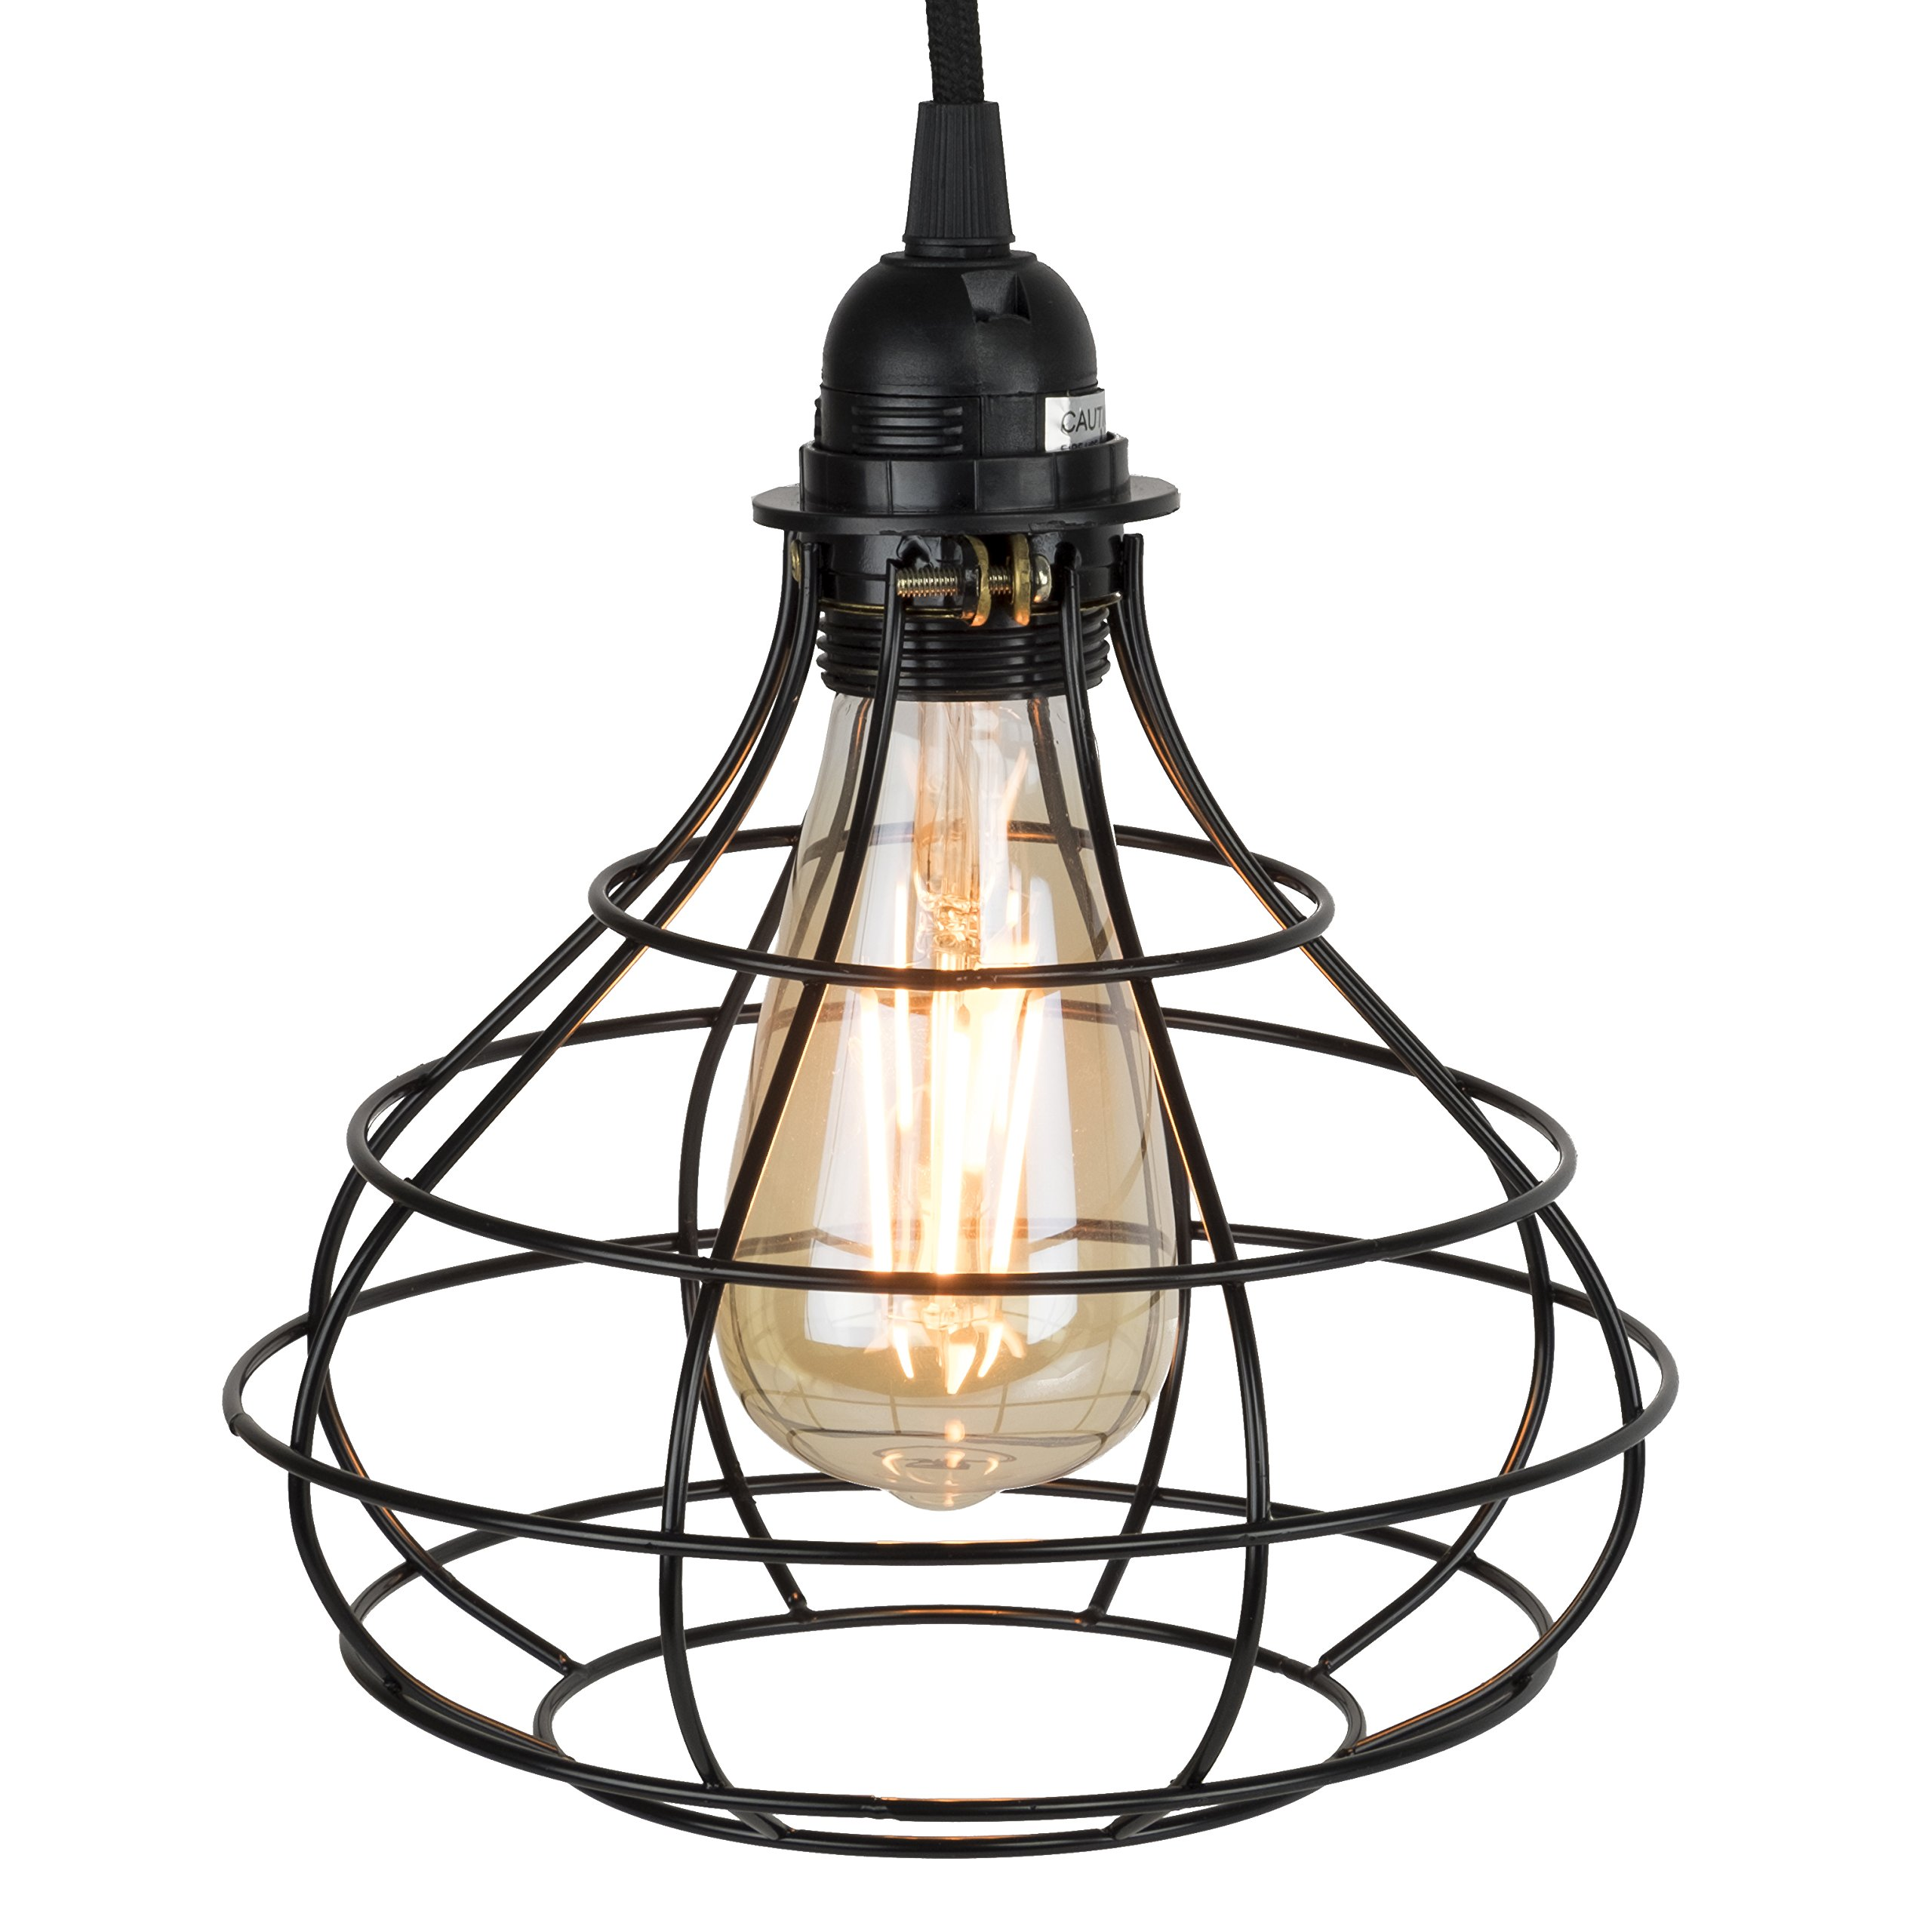 Industrial Cage Pendant Light with 15' Black Fabric Plug-in Cord and Toggle Switch Includes Edison LED Bulb in Black by Rustic State (Image #1)